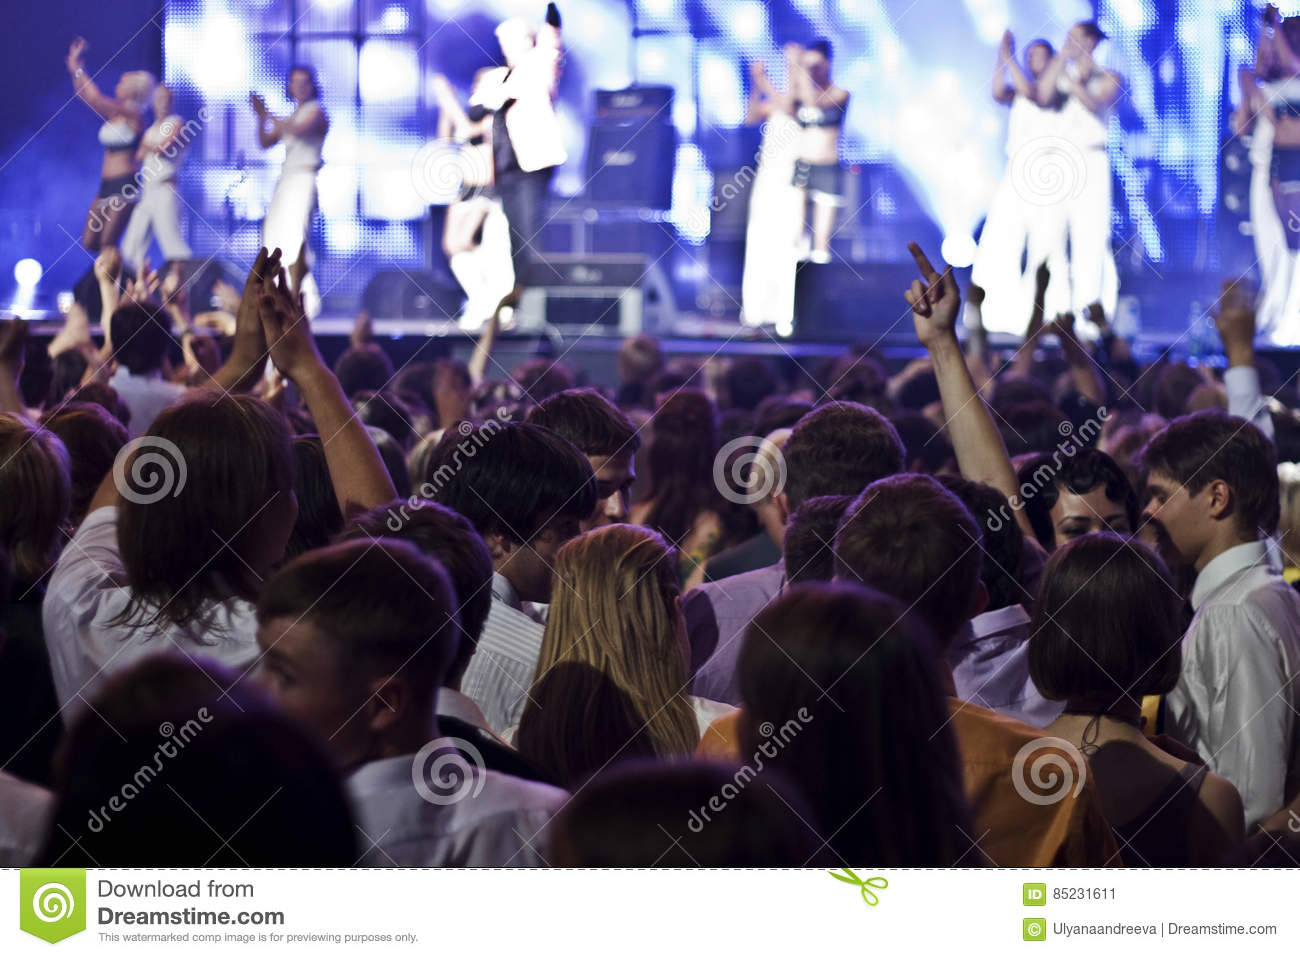 A crowd at the concert